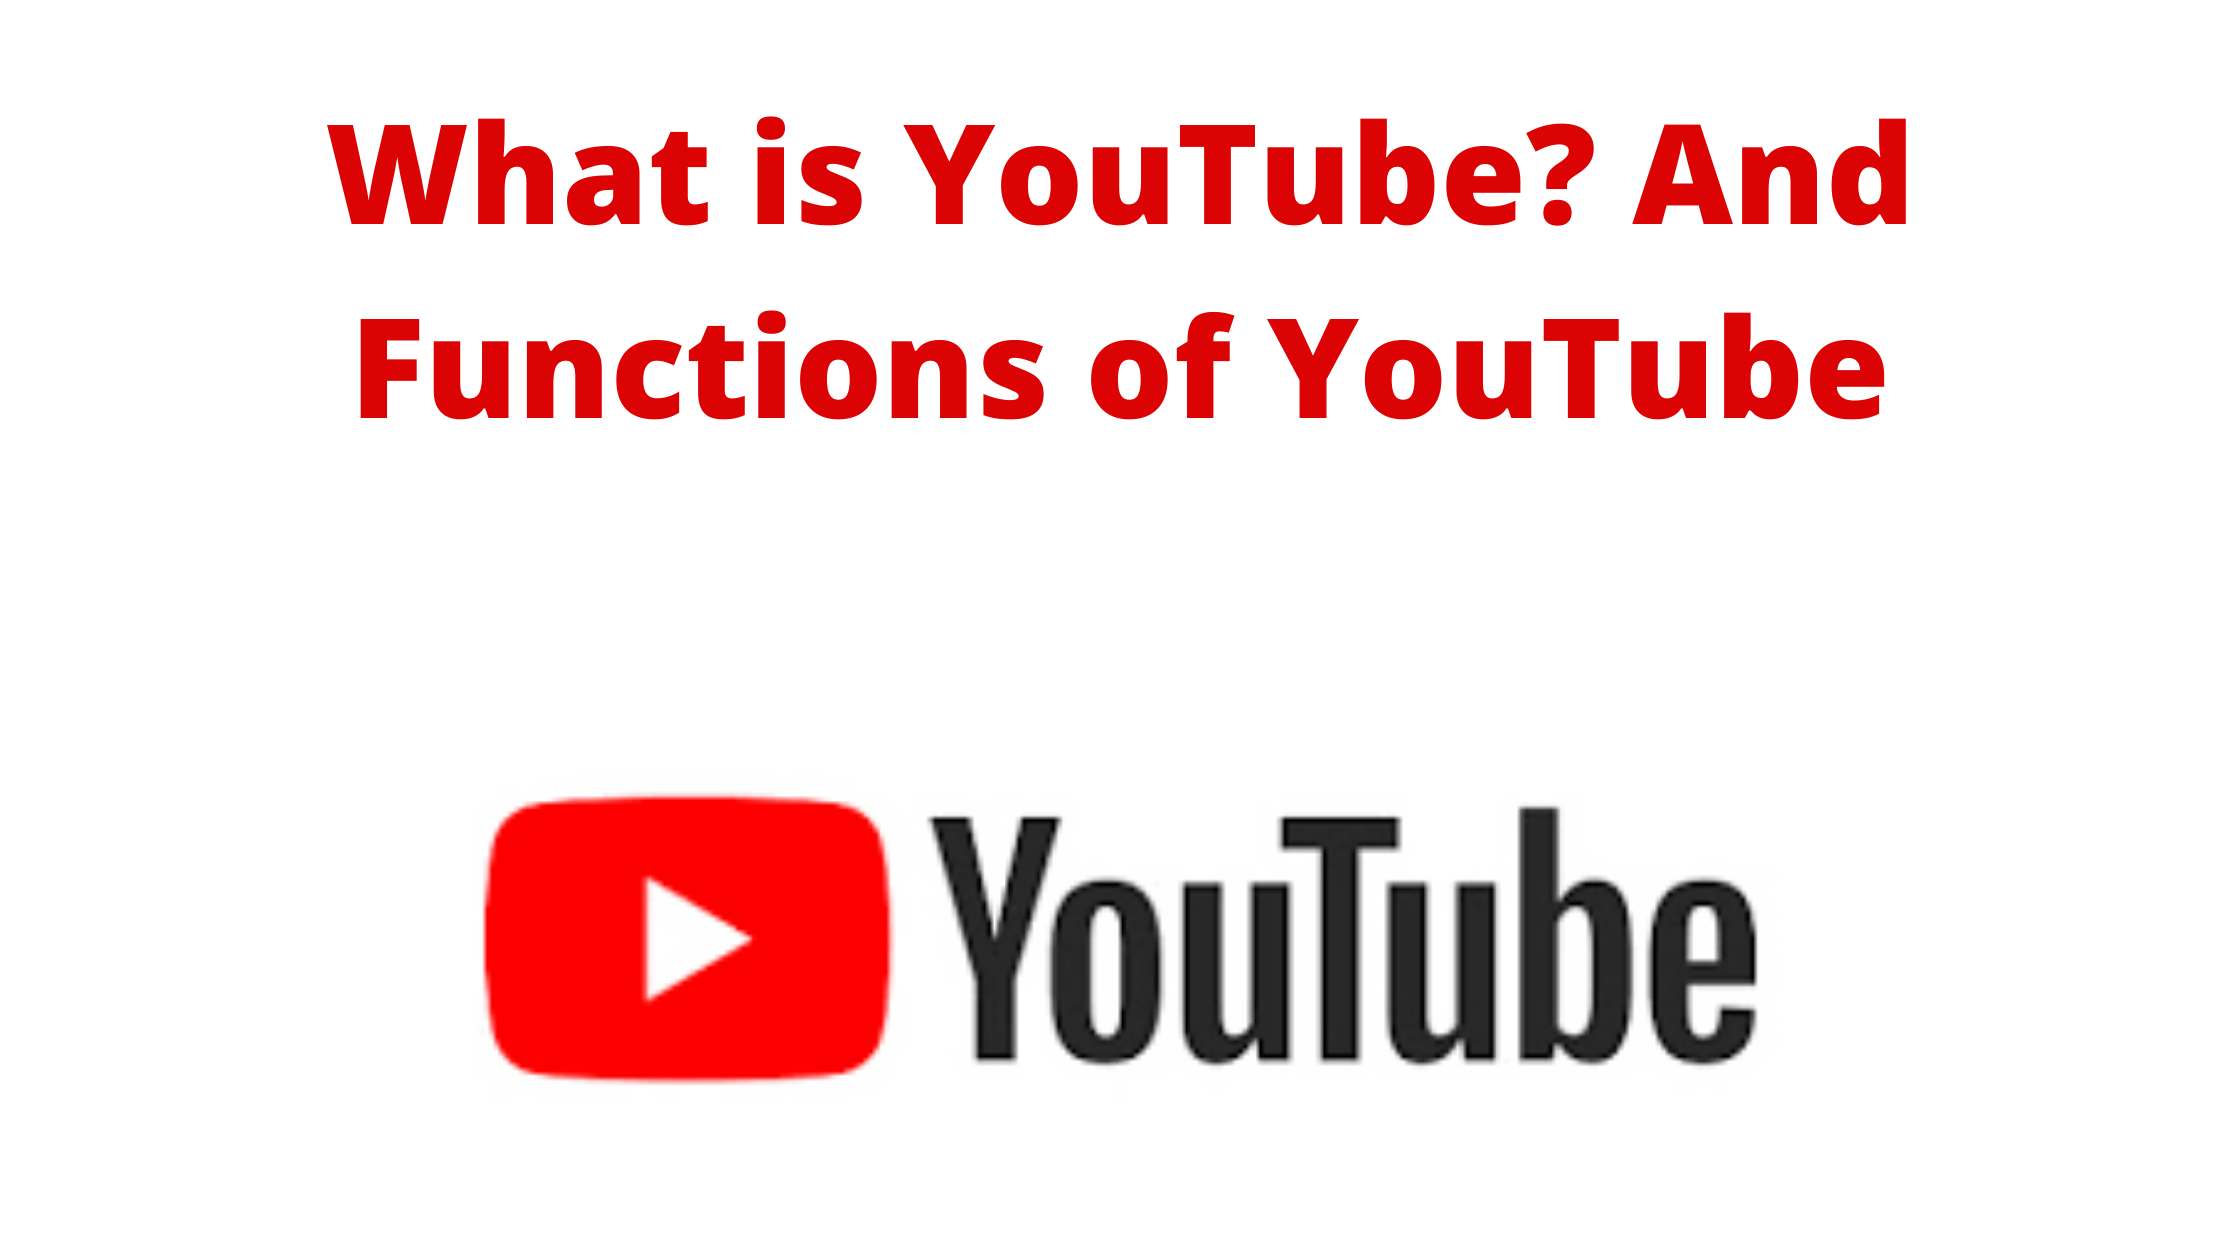 What is YouTube